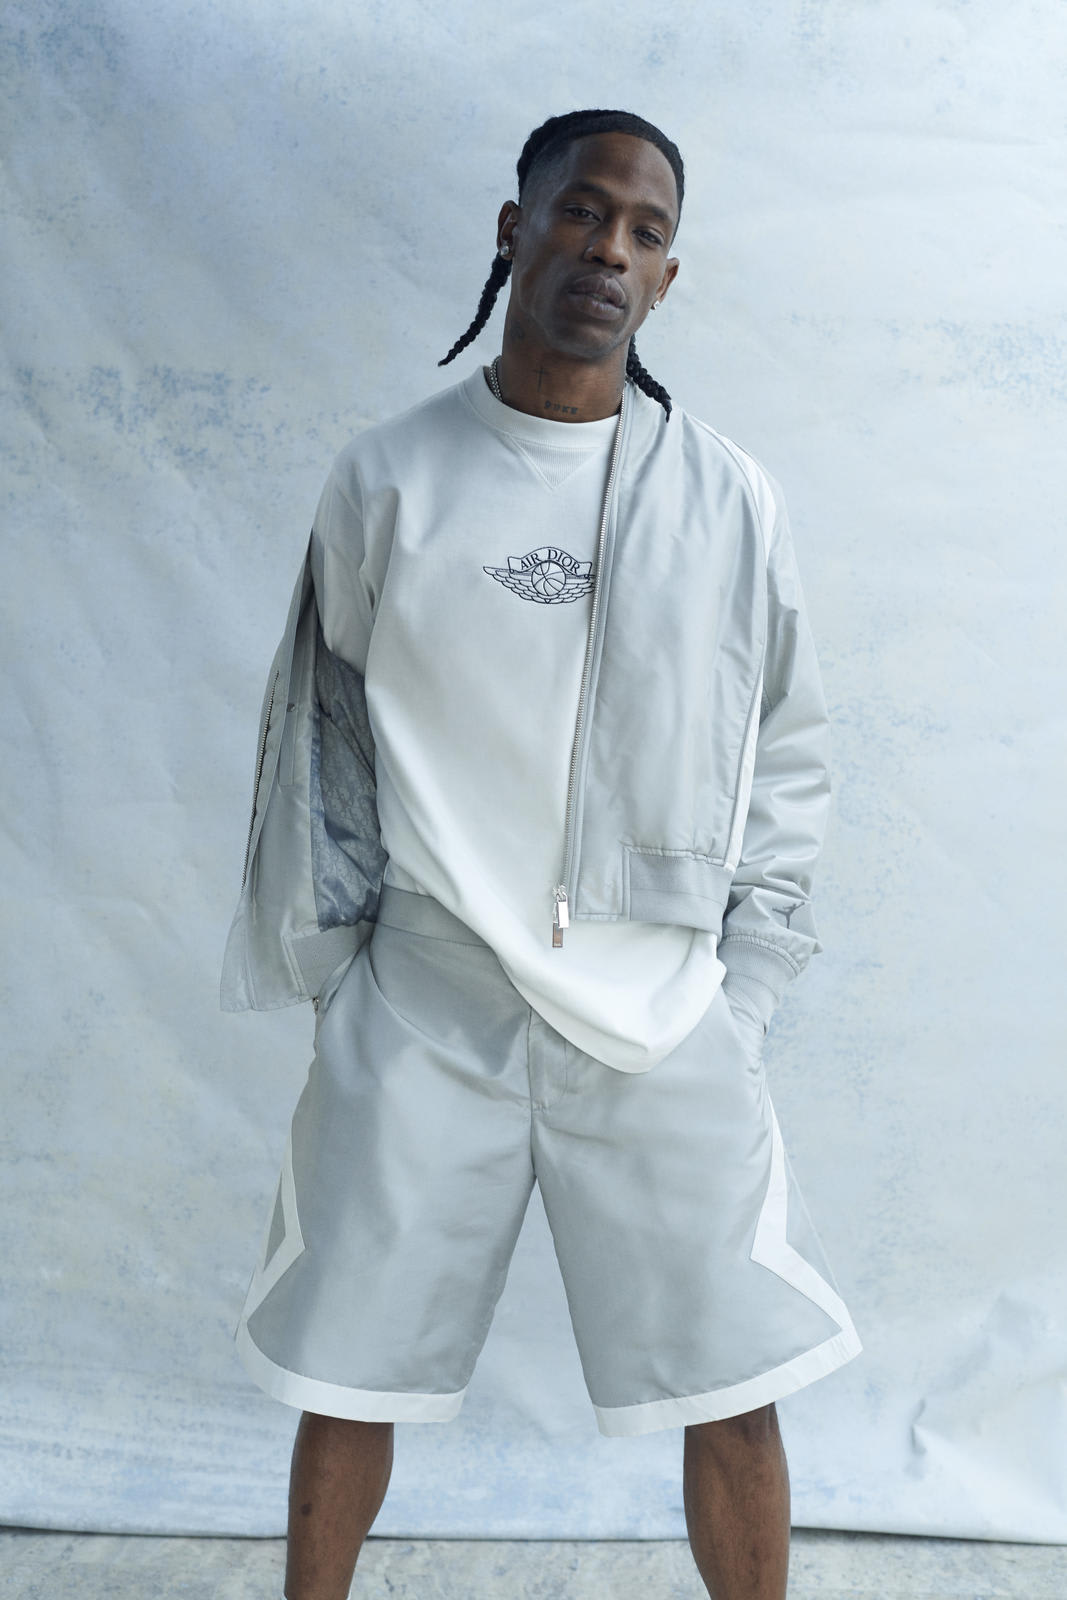 Travis Scott Dior Air Jordan Apparel